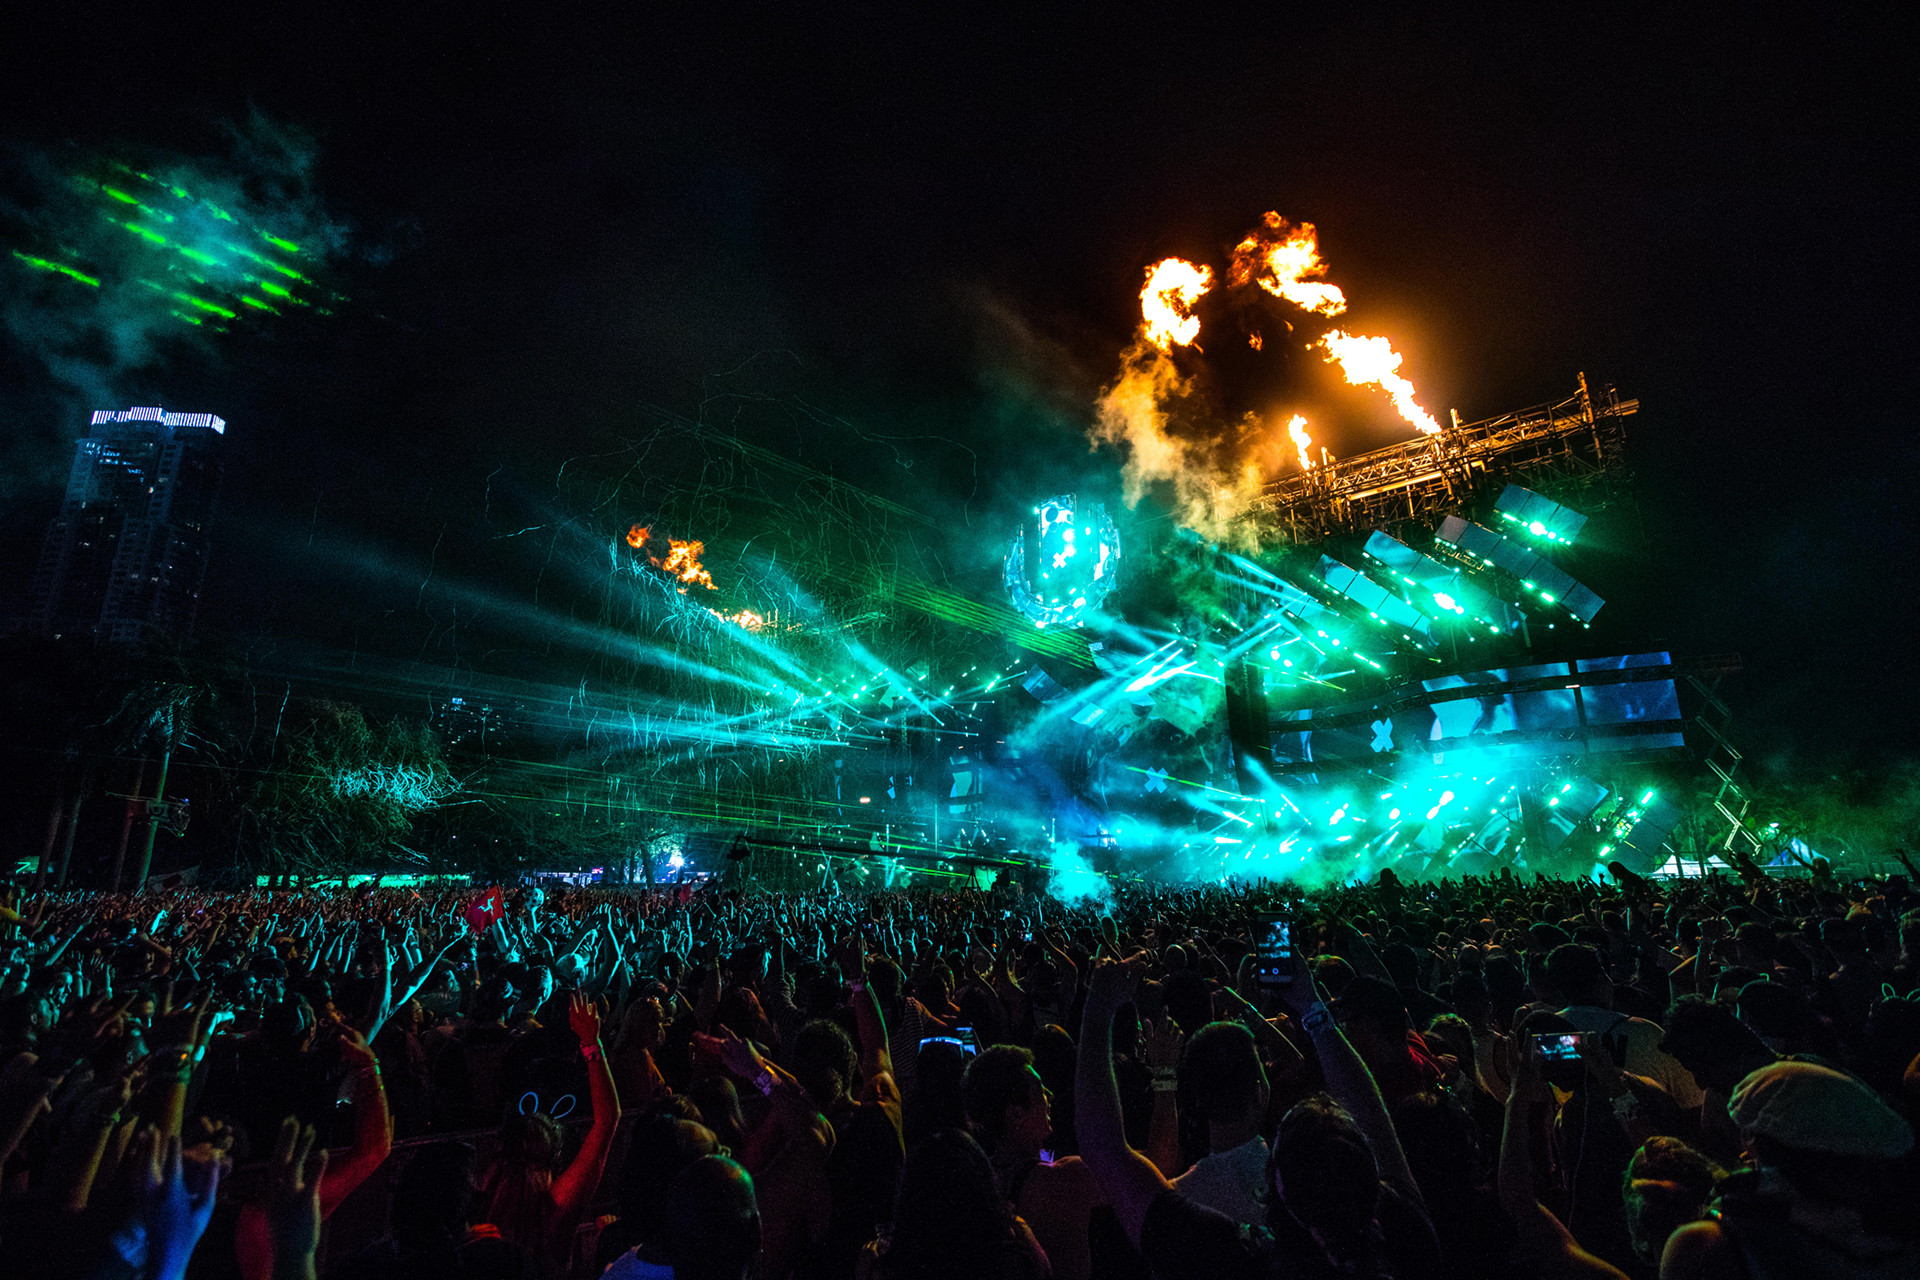 … electronic music fans dream and summoned thousands of festival  fanatics, industry personnel, and music lovers ready for three days of  nonstop music.